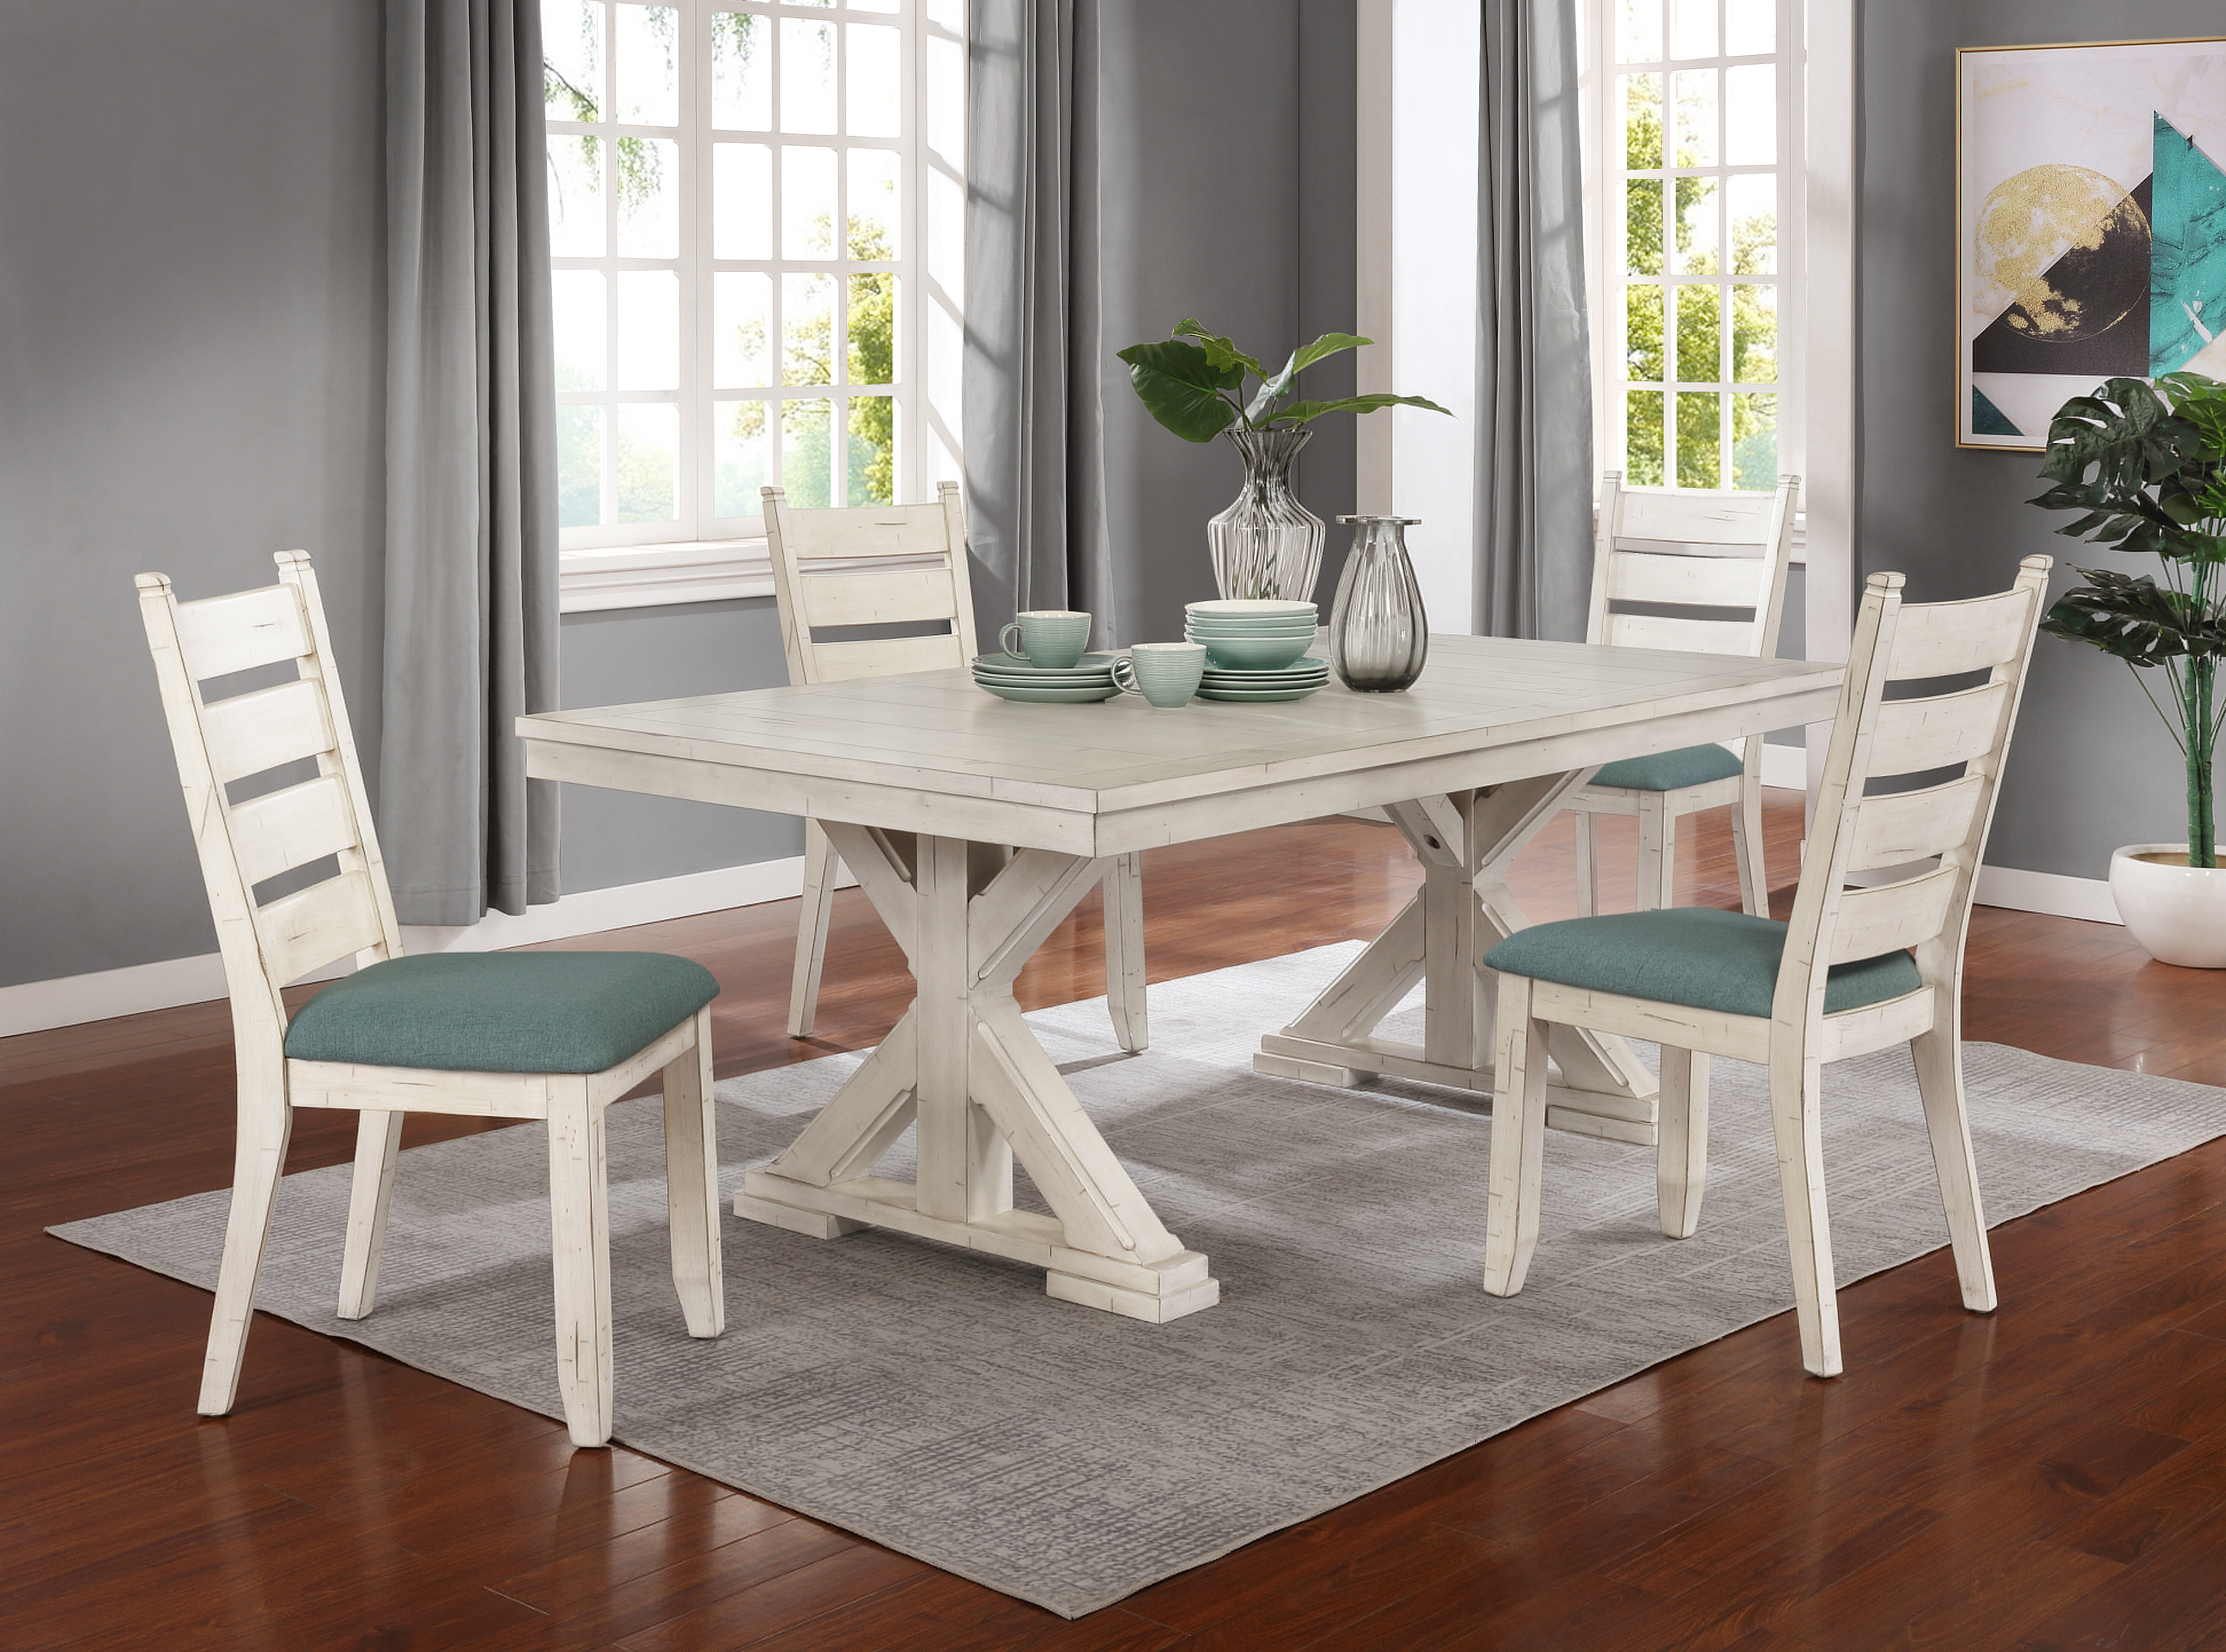 Scarborough 5 Piece Dining Set Inside 2017 Middleport 5 Piece Dining Sets (View 12 of 20)